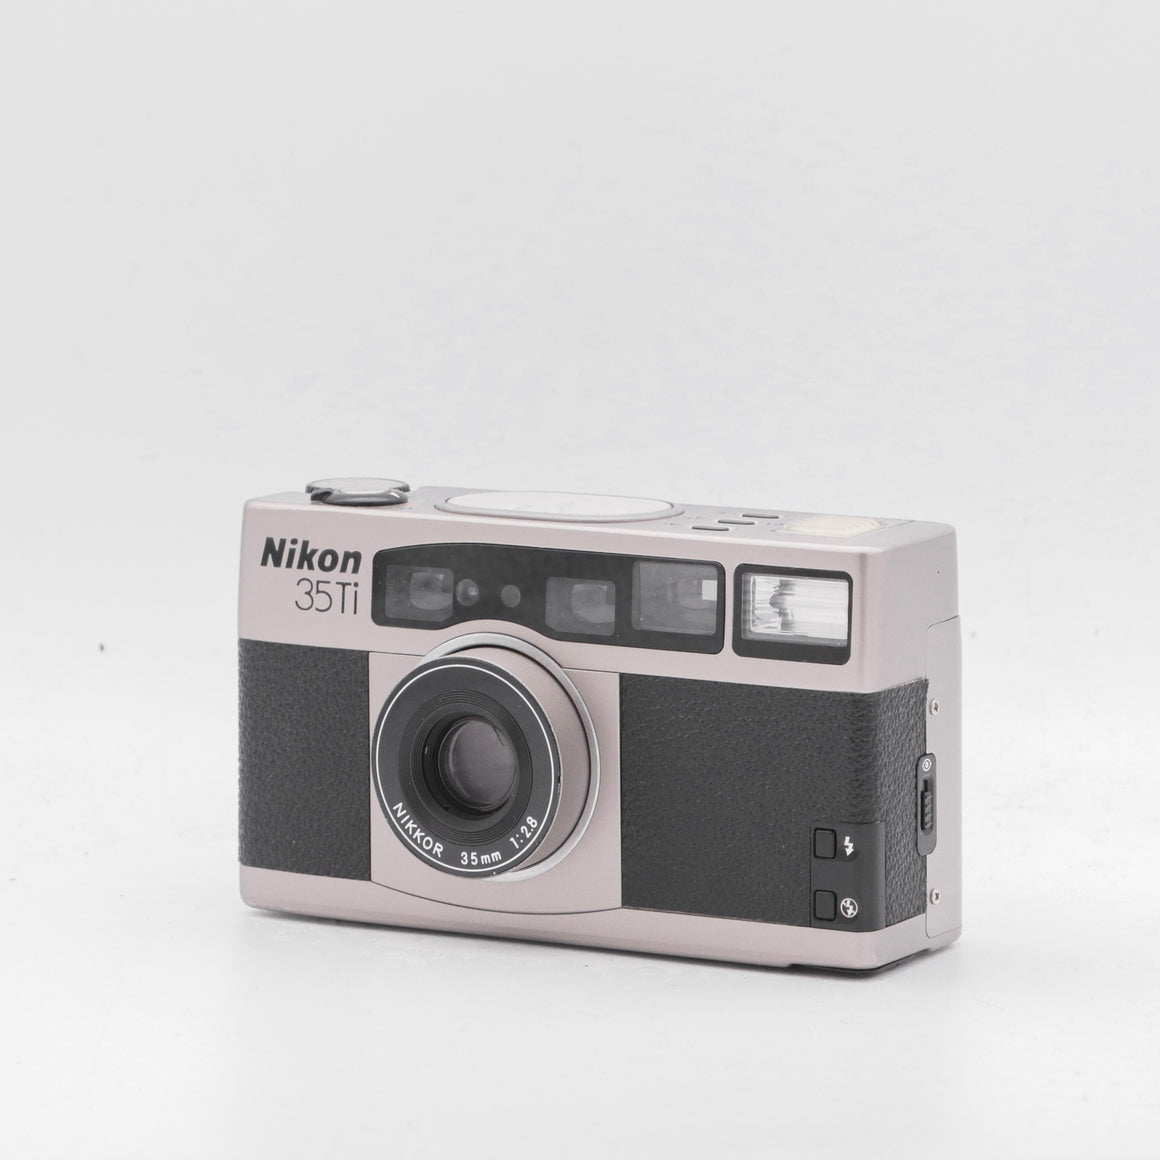 Nikon 35Ti Point And Shoot Camera